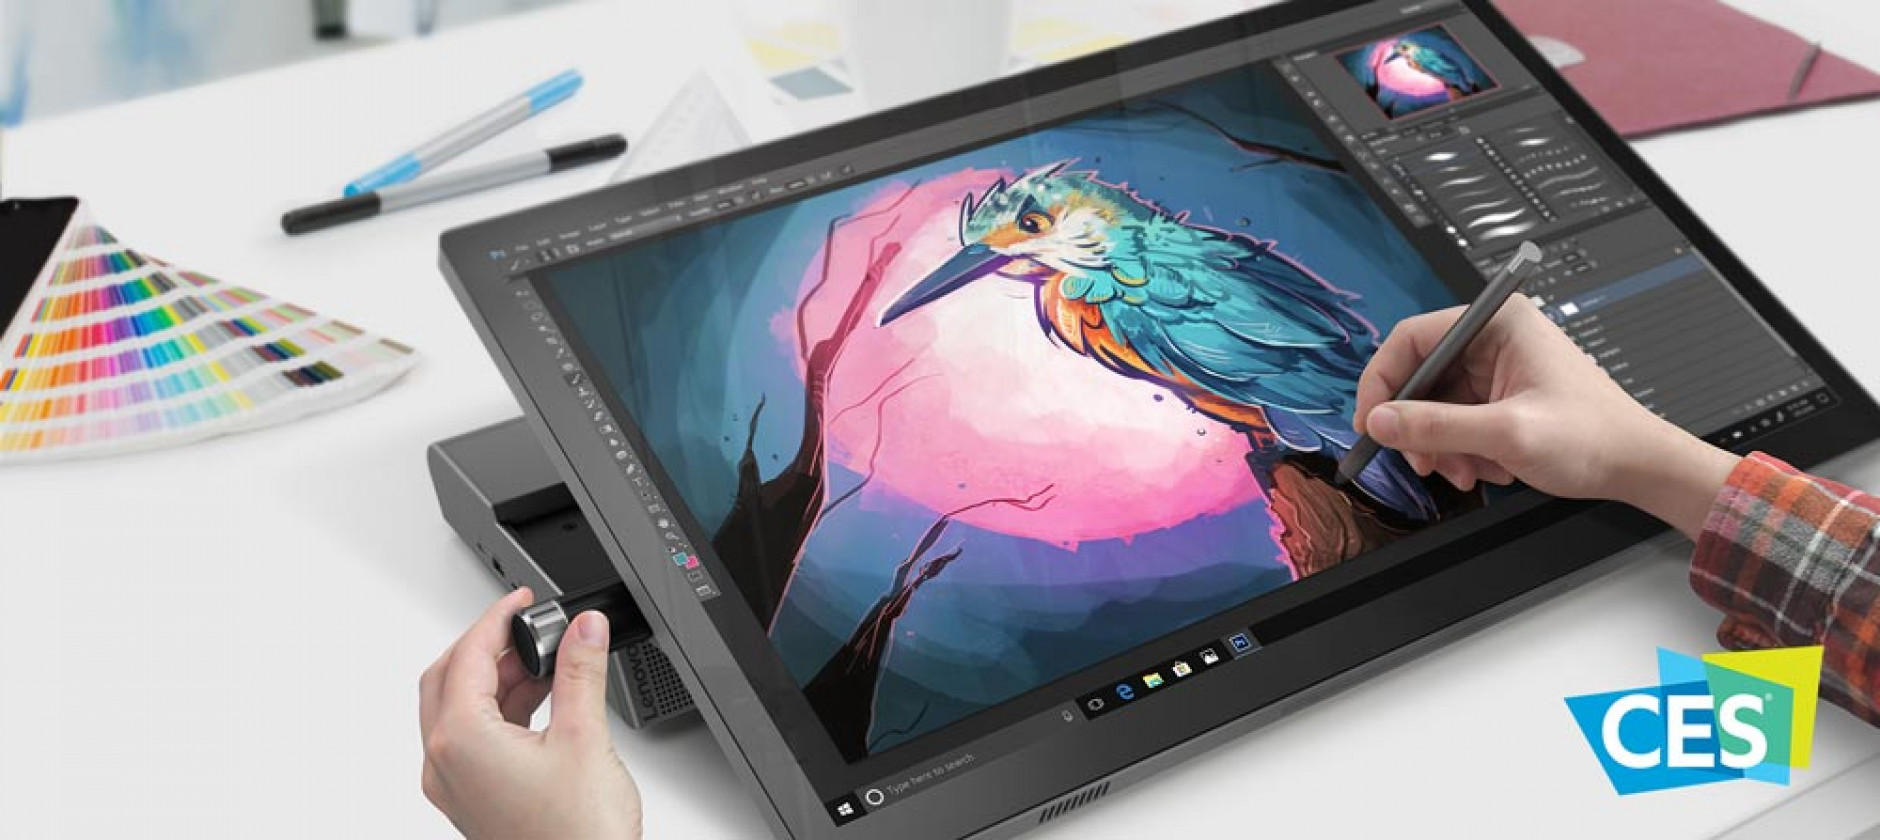 Lenovo Yoga A940, il desktop all-in-one che sfida il Surface Studio di Microsoft